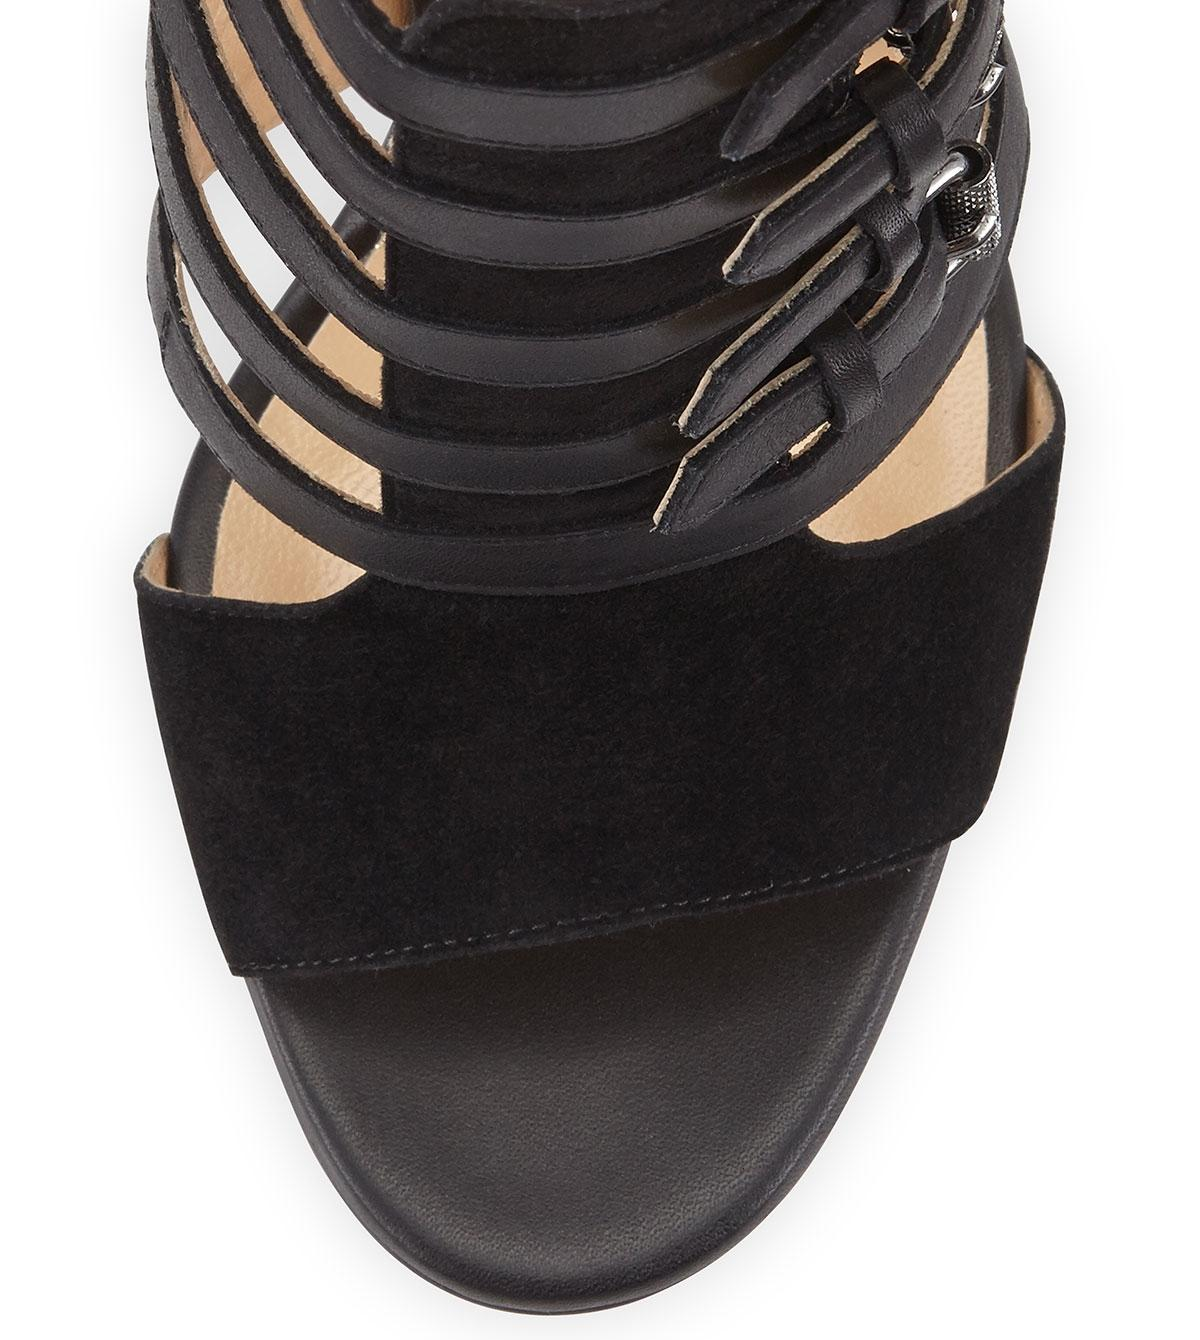 0a96e93e954c ... Christian Louboutin Black New Trotti 100 Leather Open 37 37 37  Boots Booties Size US